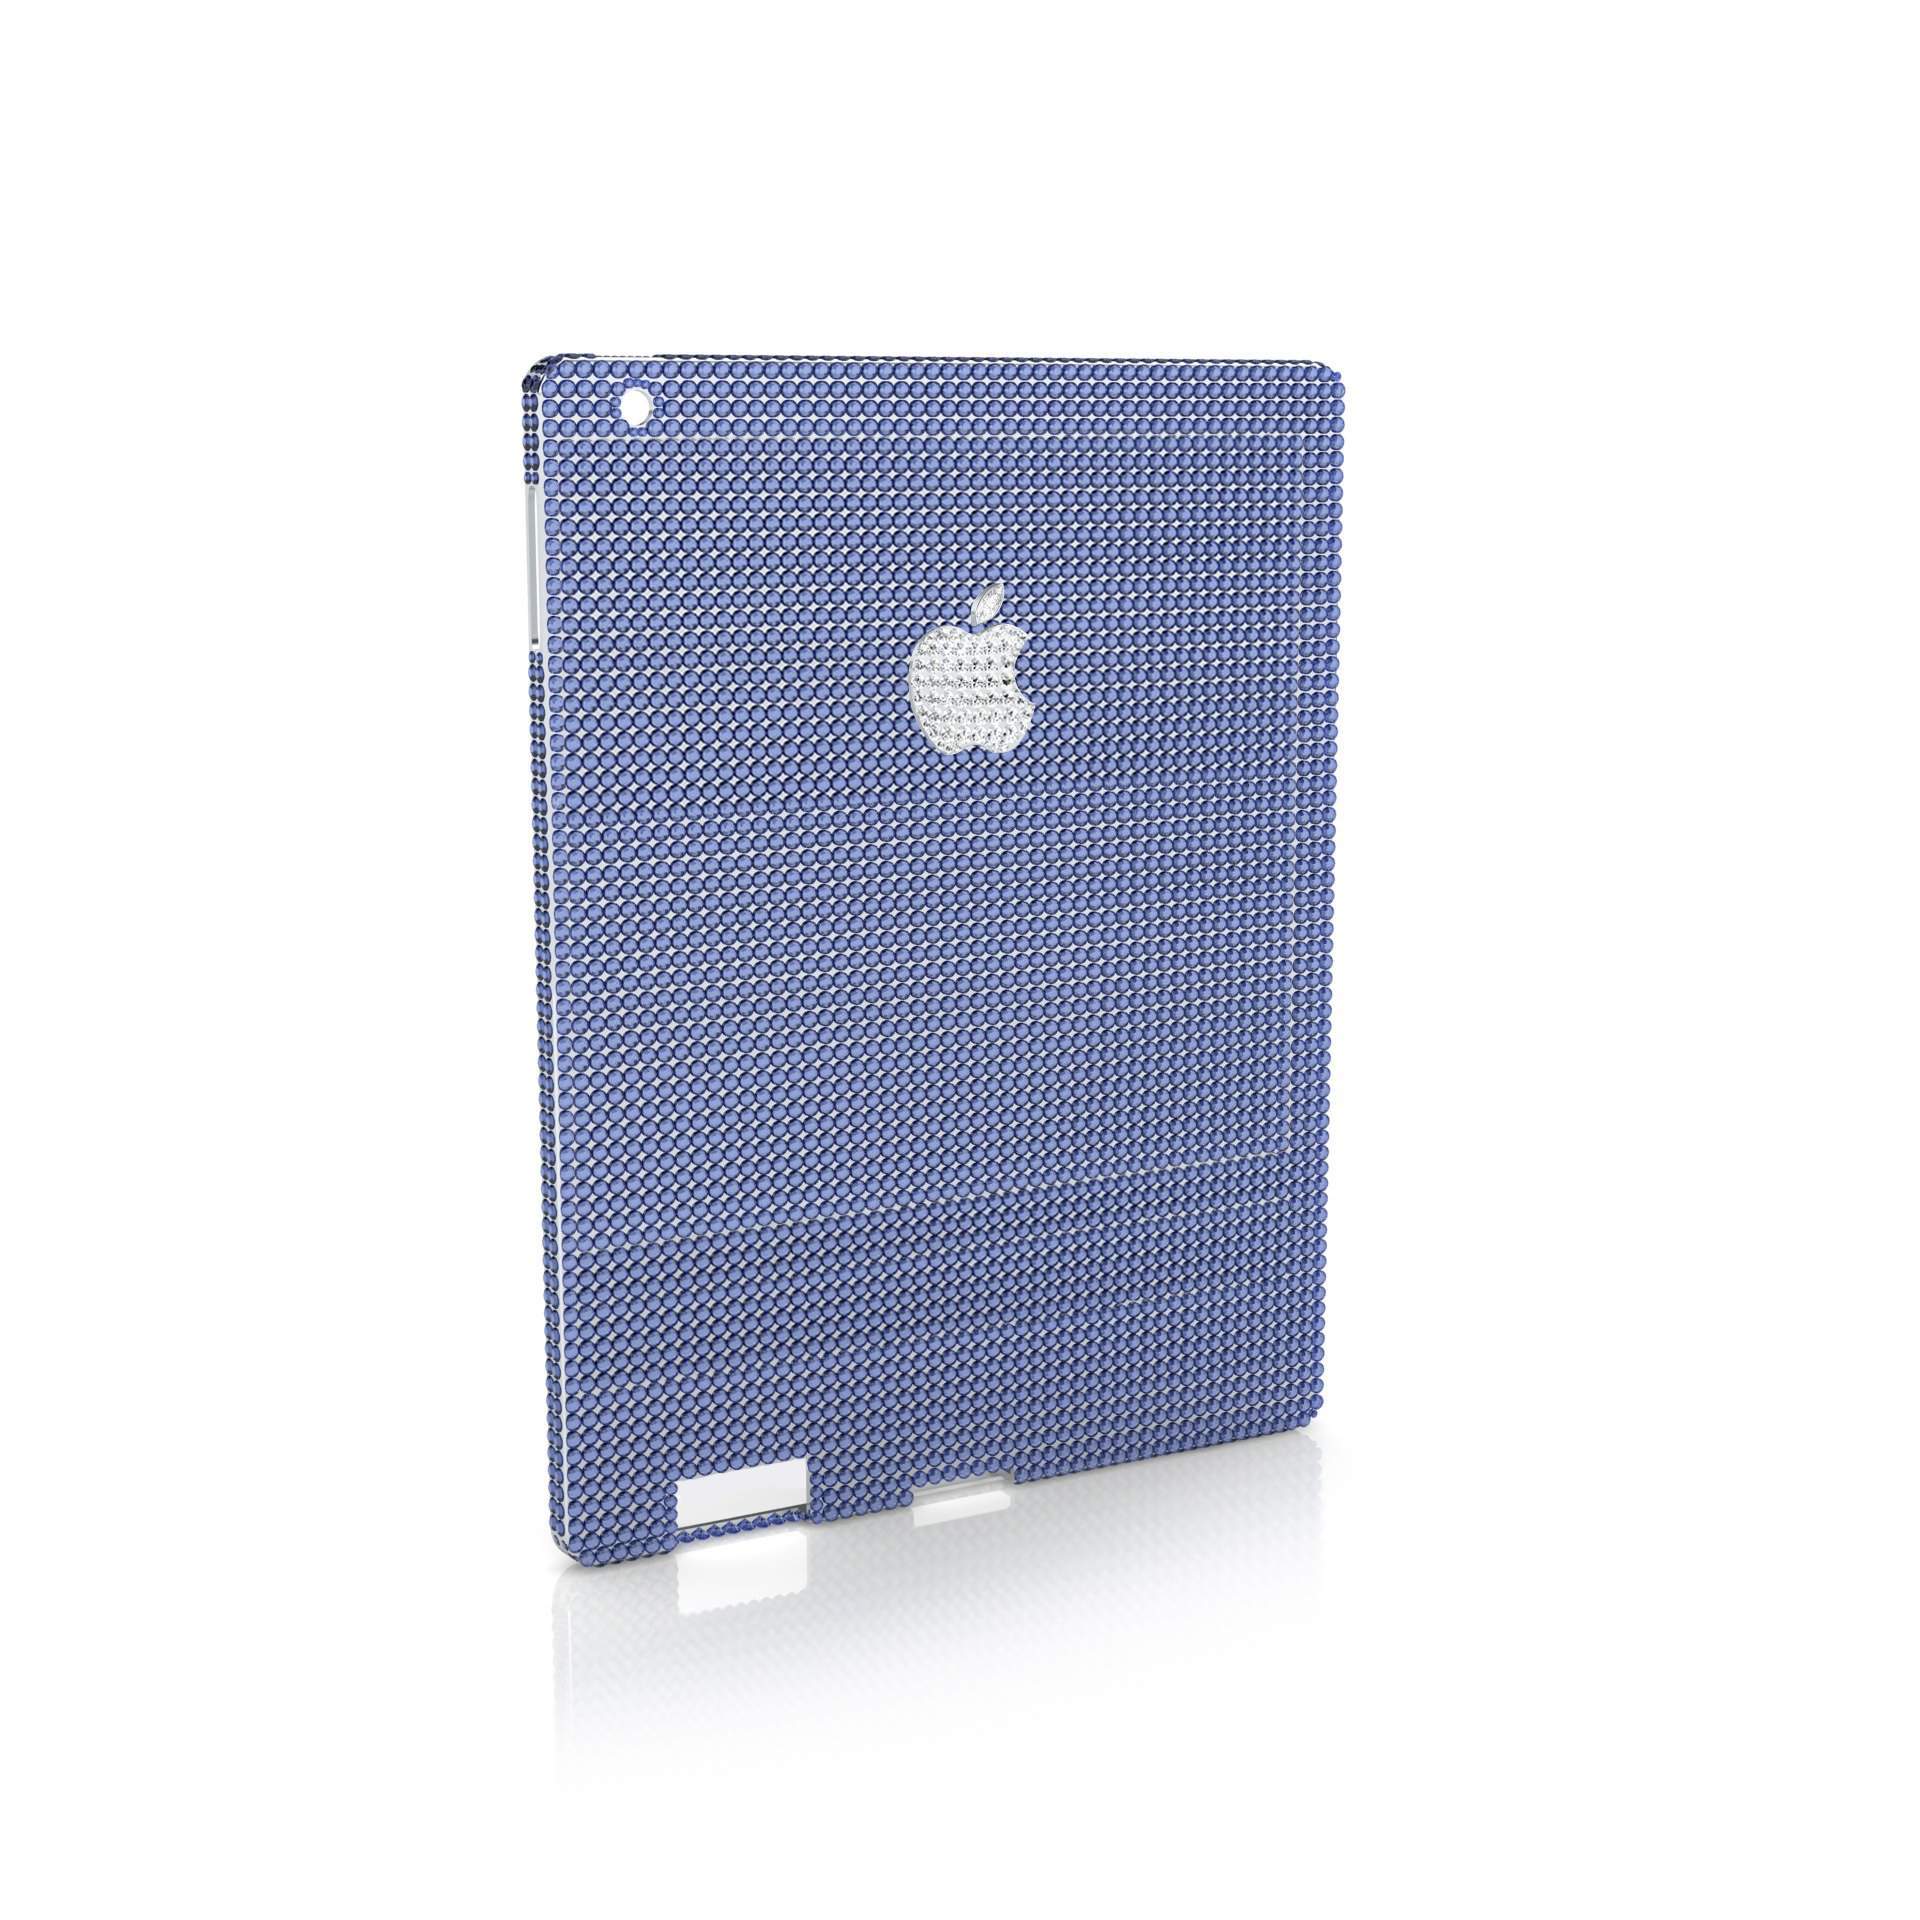 Our New (and Fabulous)Sapphire and Diamond iPad Mini